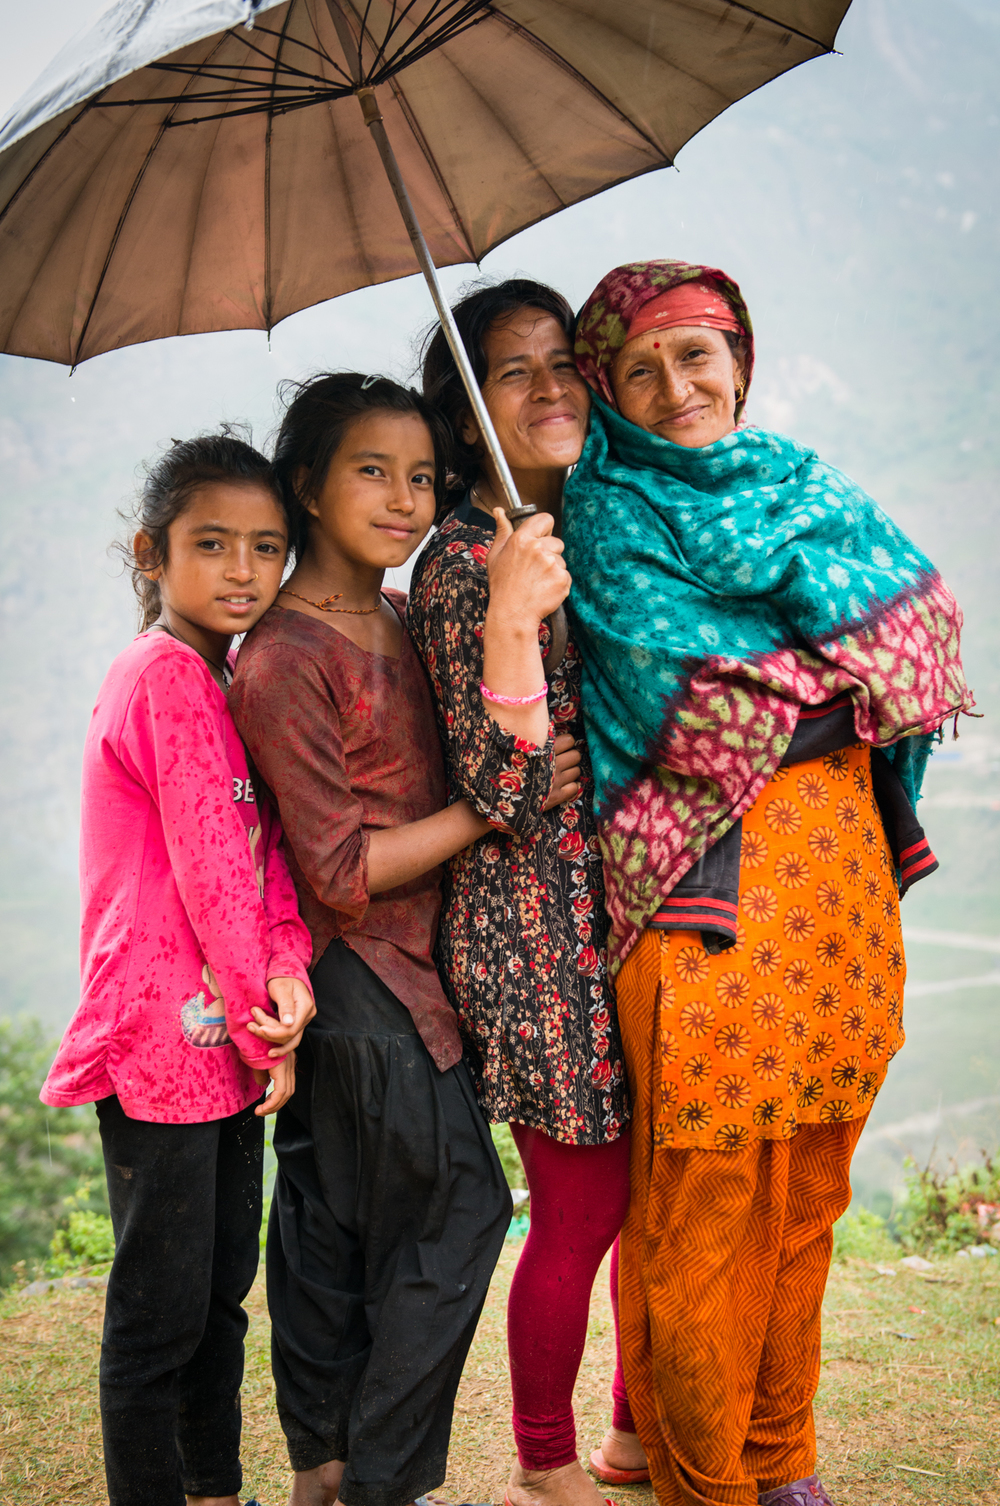 A grandmother, mother and her two daughters seek shelter in the rain - Khiping, Nepal.